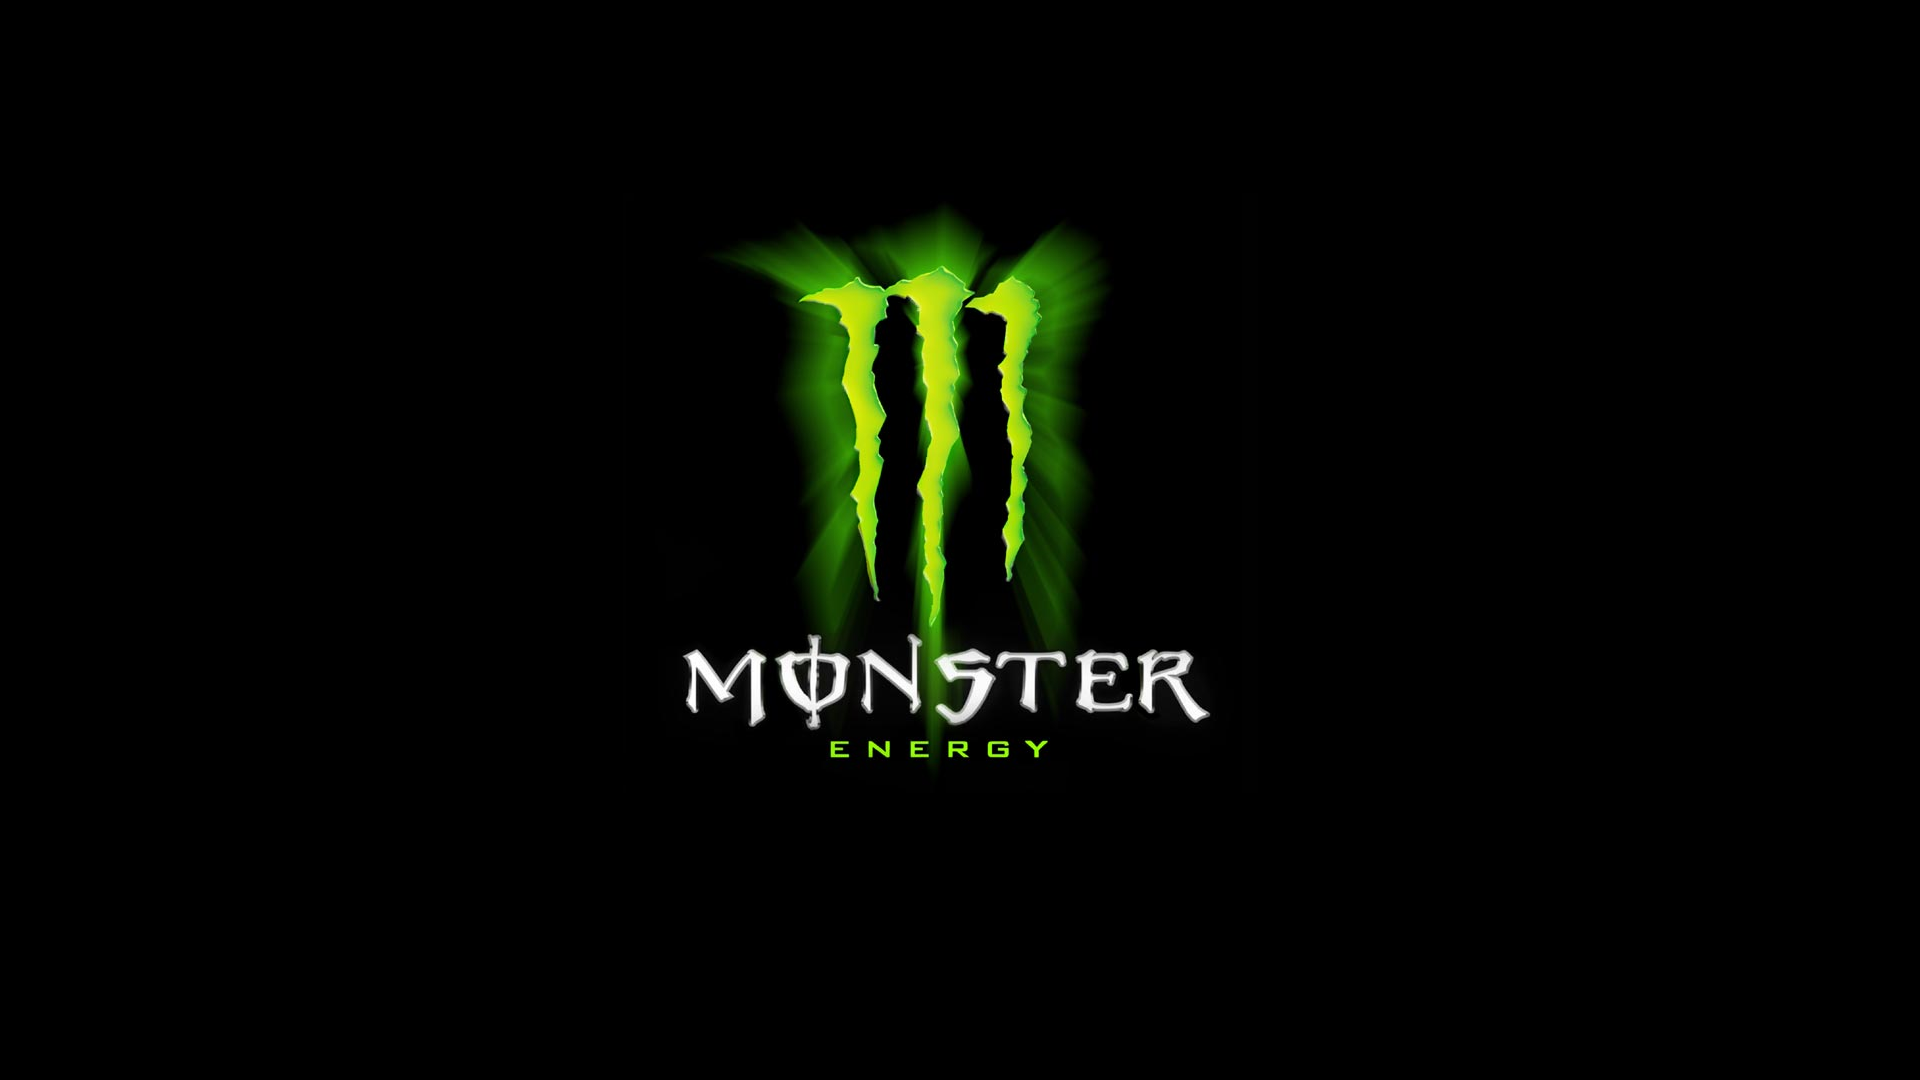 Wallpaper Monster